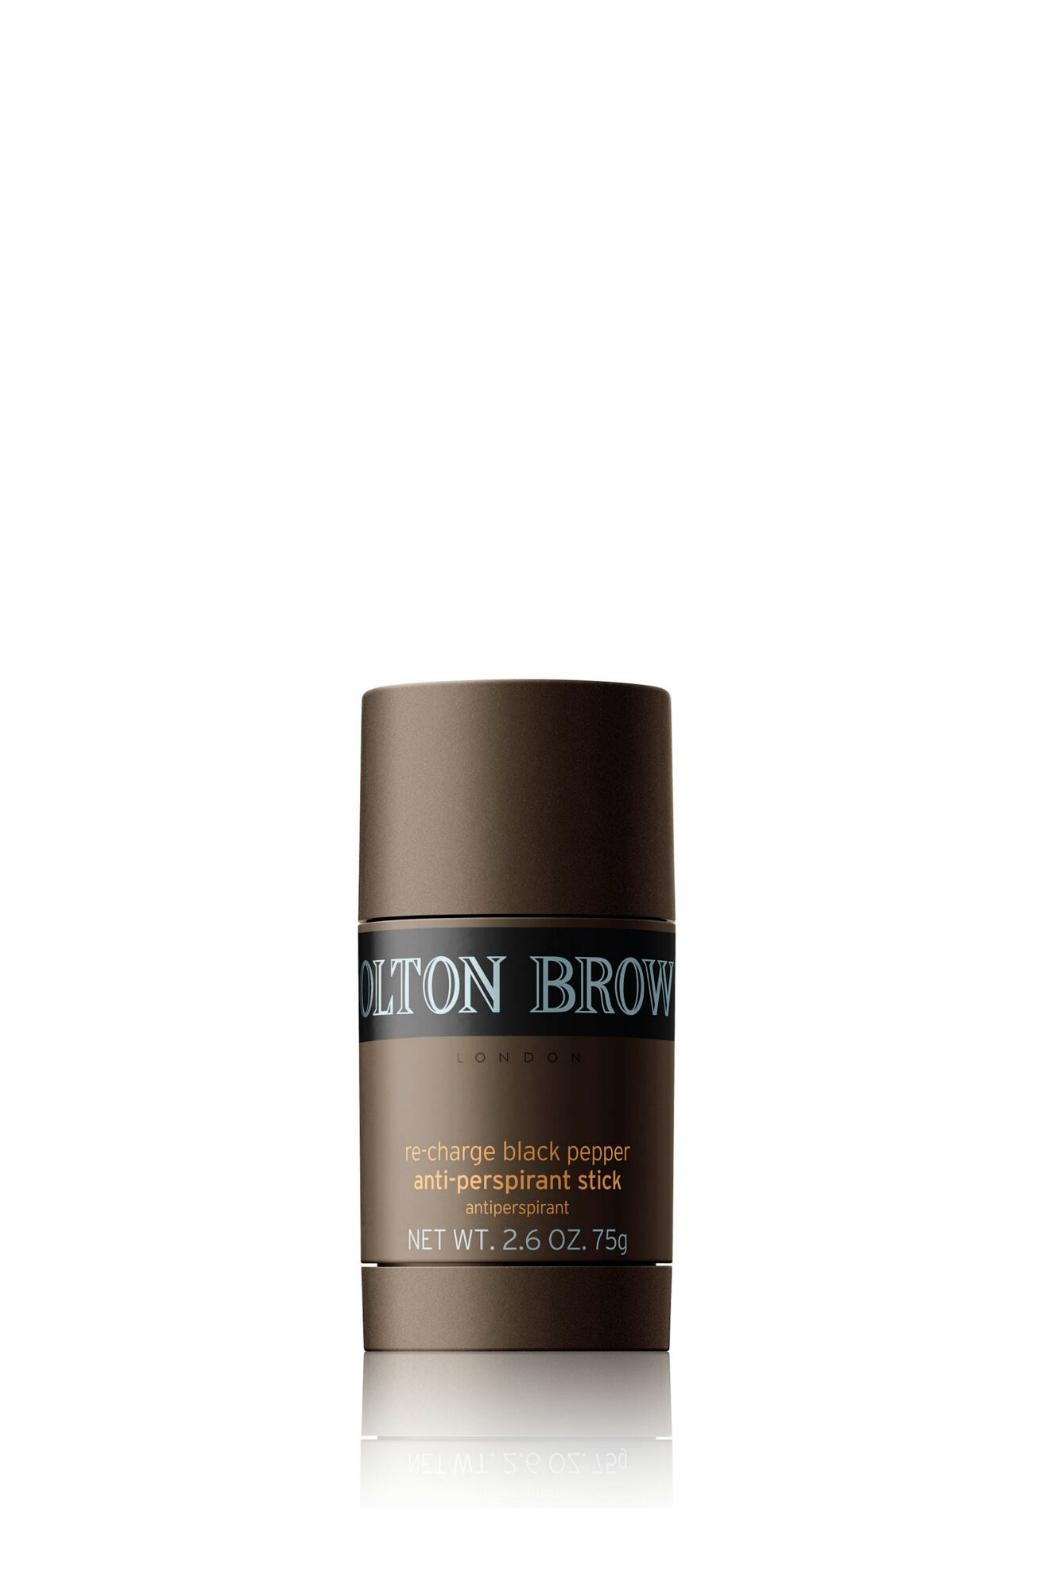 Molton Brown Blackpepper Anti-Perspirant Deodorant - Main Image